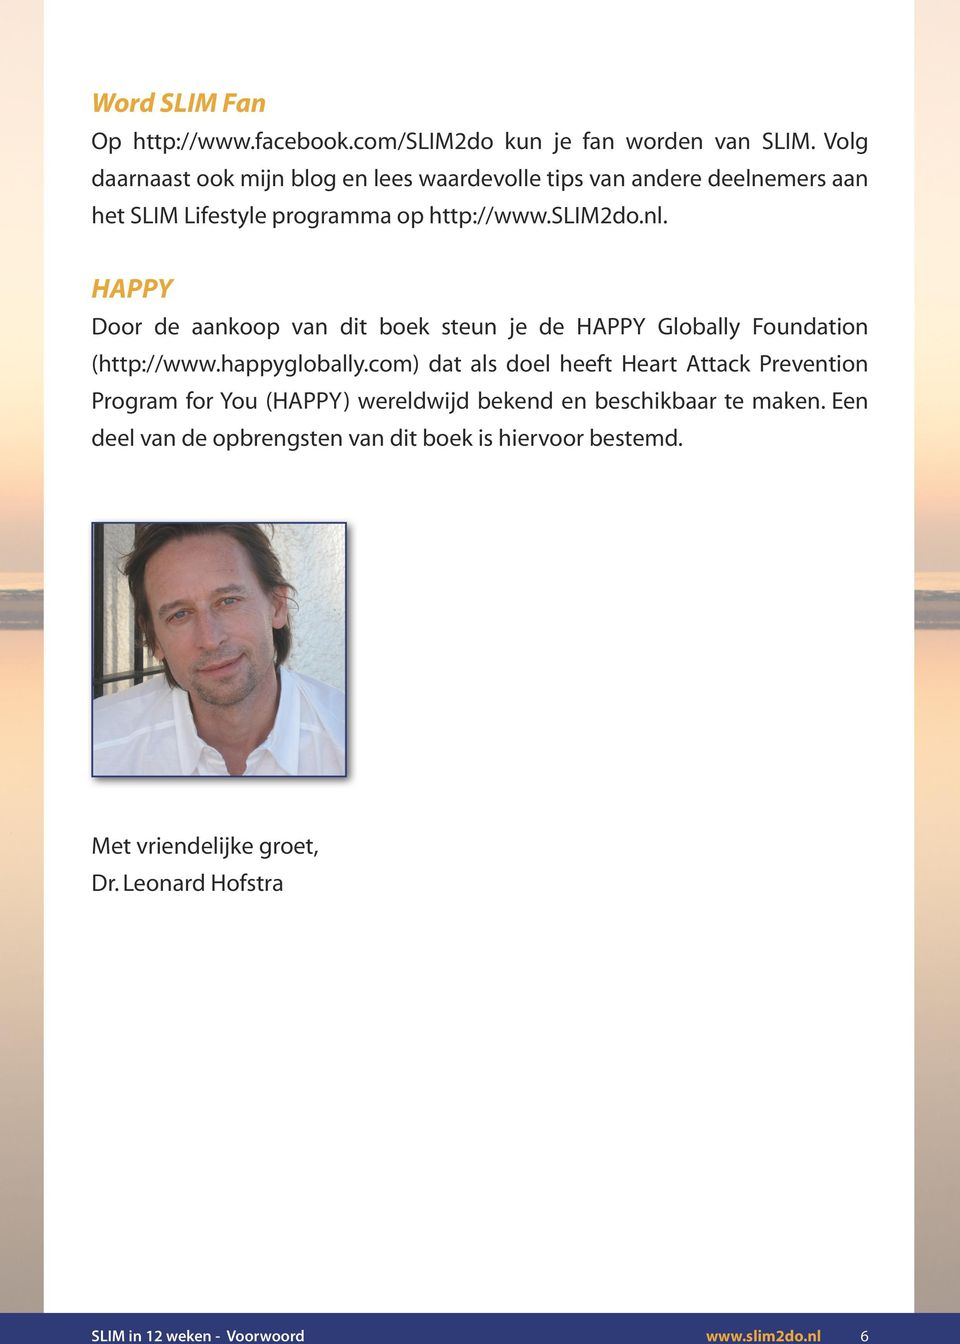 HAPPY Door de aankoop van dit boek steun je de HAPPY Globally Foundation (http://www.happyglobally.